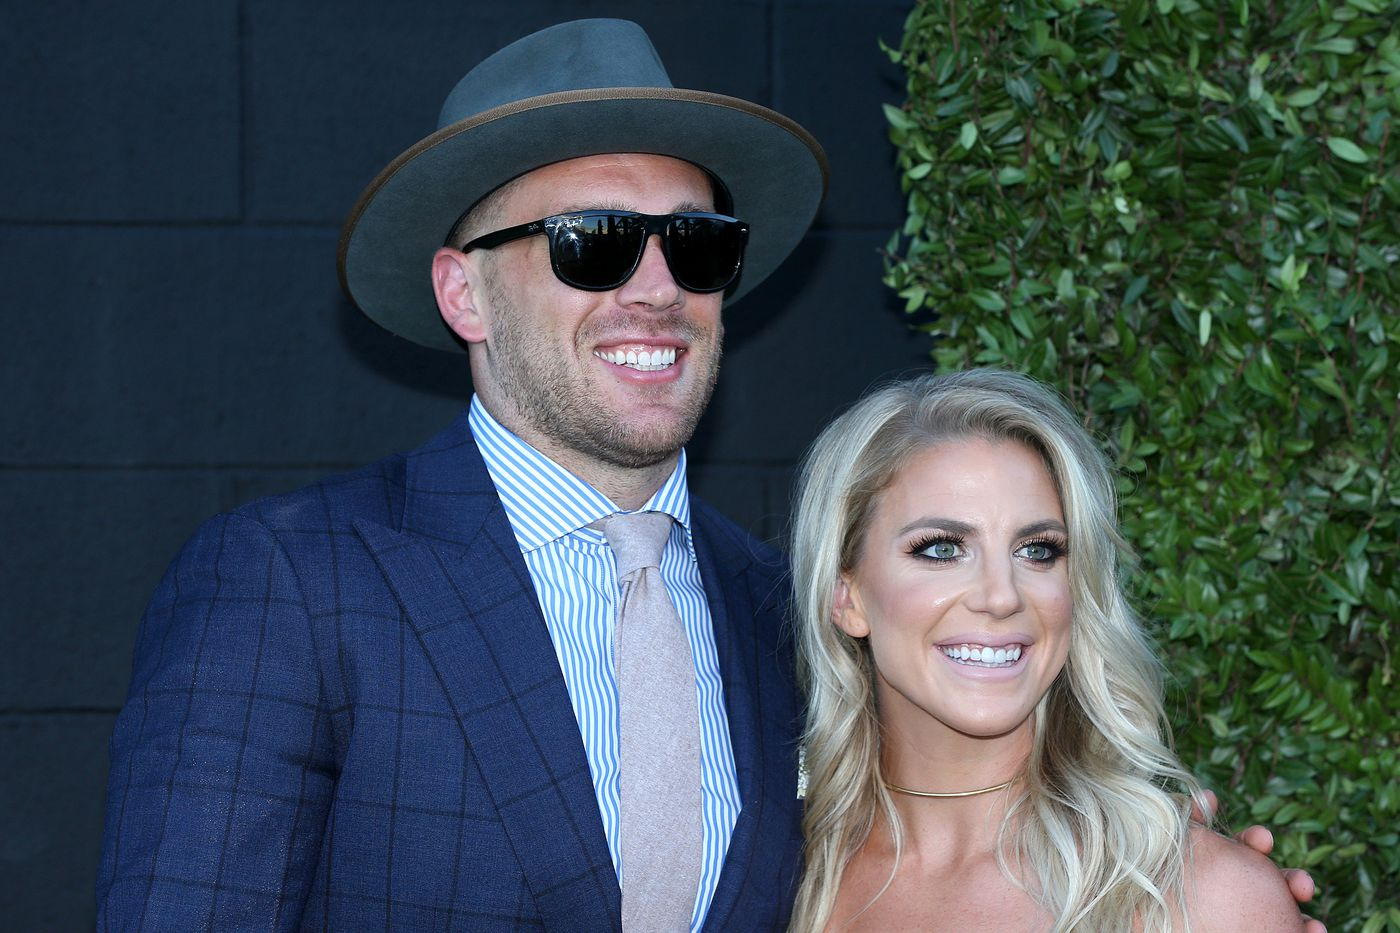 Zach Ertz and his wife, Julie, pose for photos while entering the Eagles' Super Bowl championship ring ceremony in South Philadelphia.